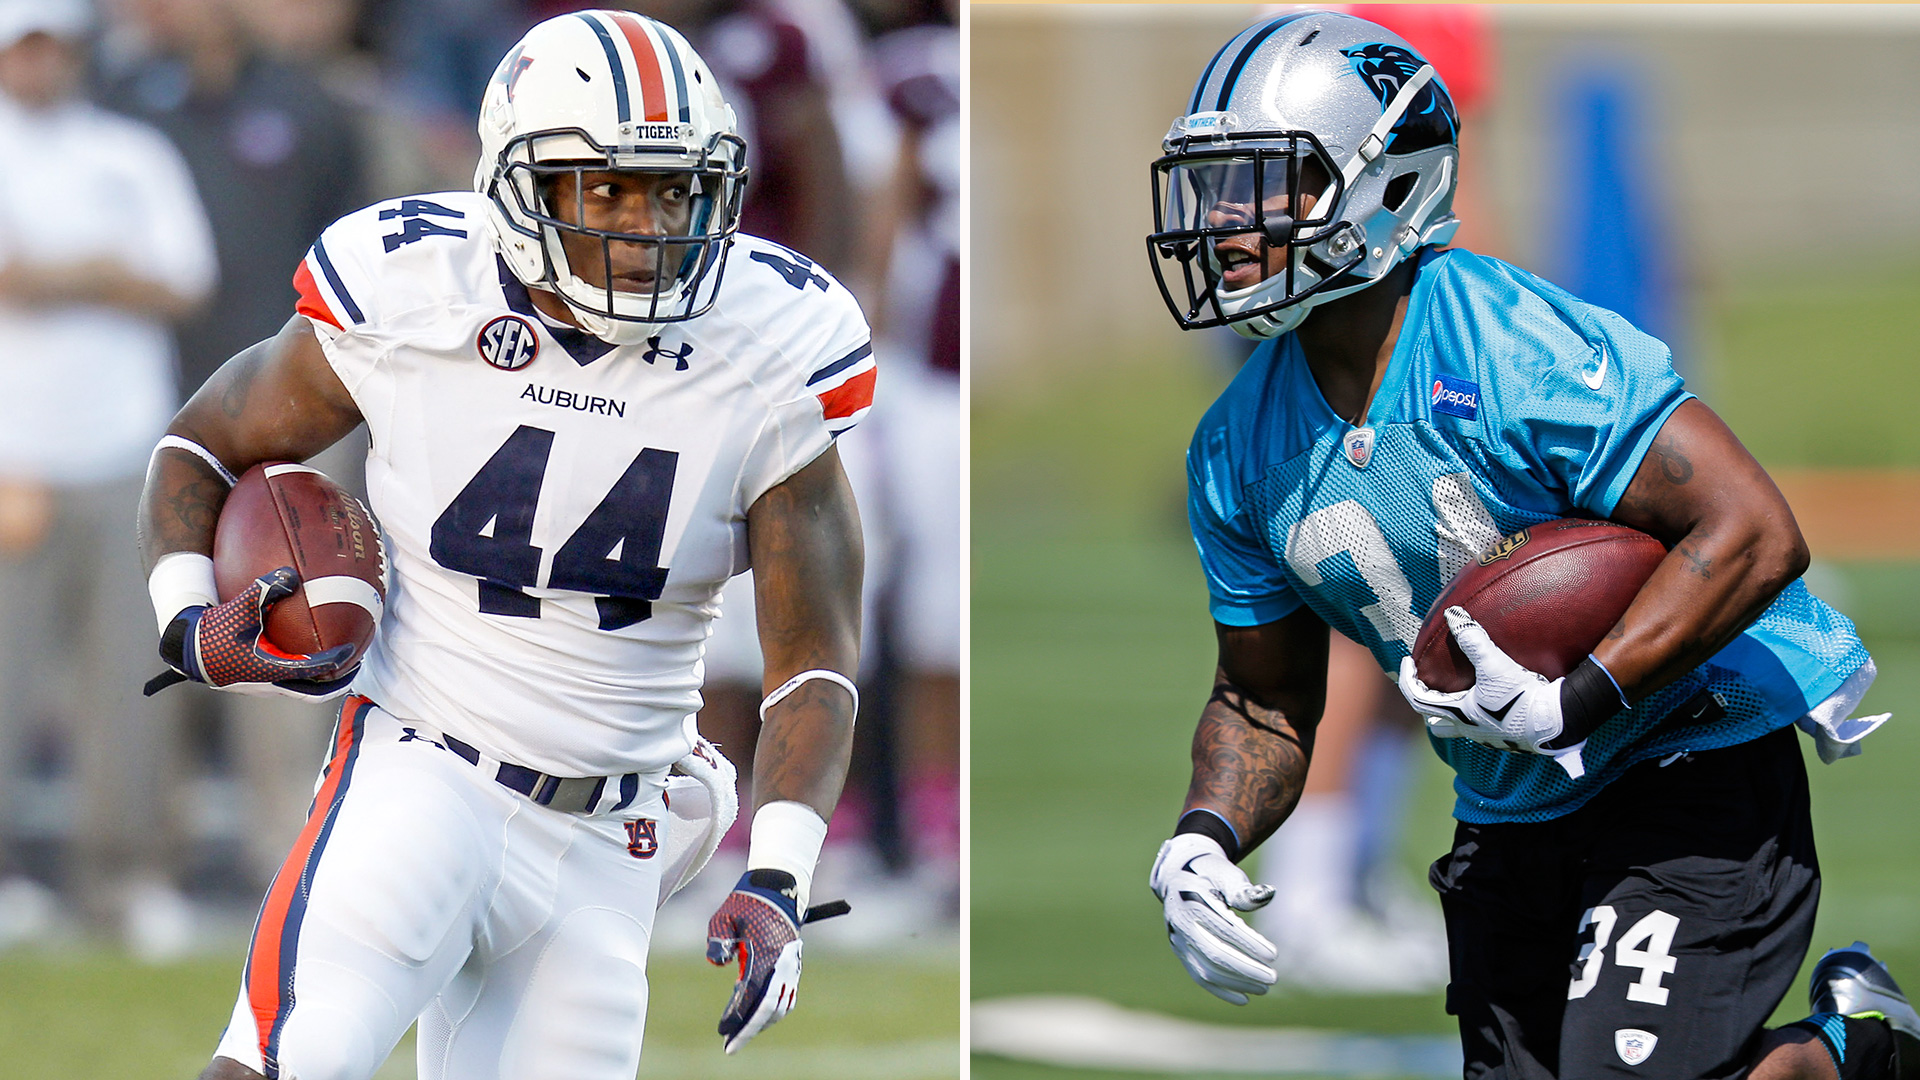 Artis-Payne, 'the other Cam' from Auburn, a natural in Panthers offense